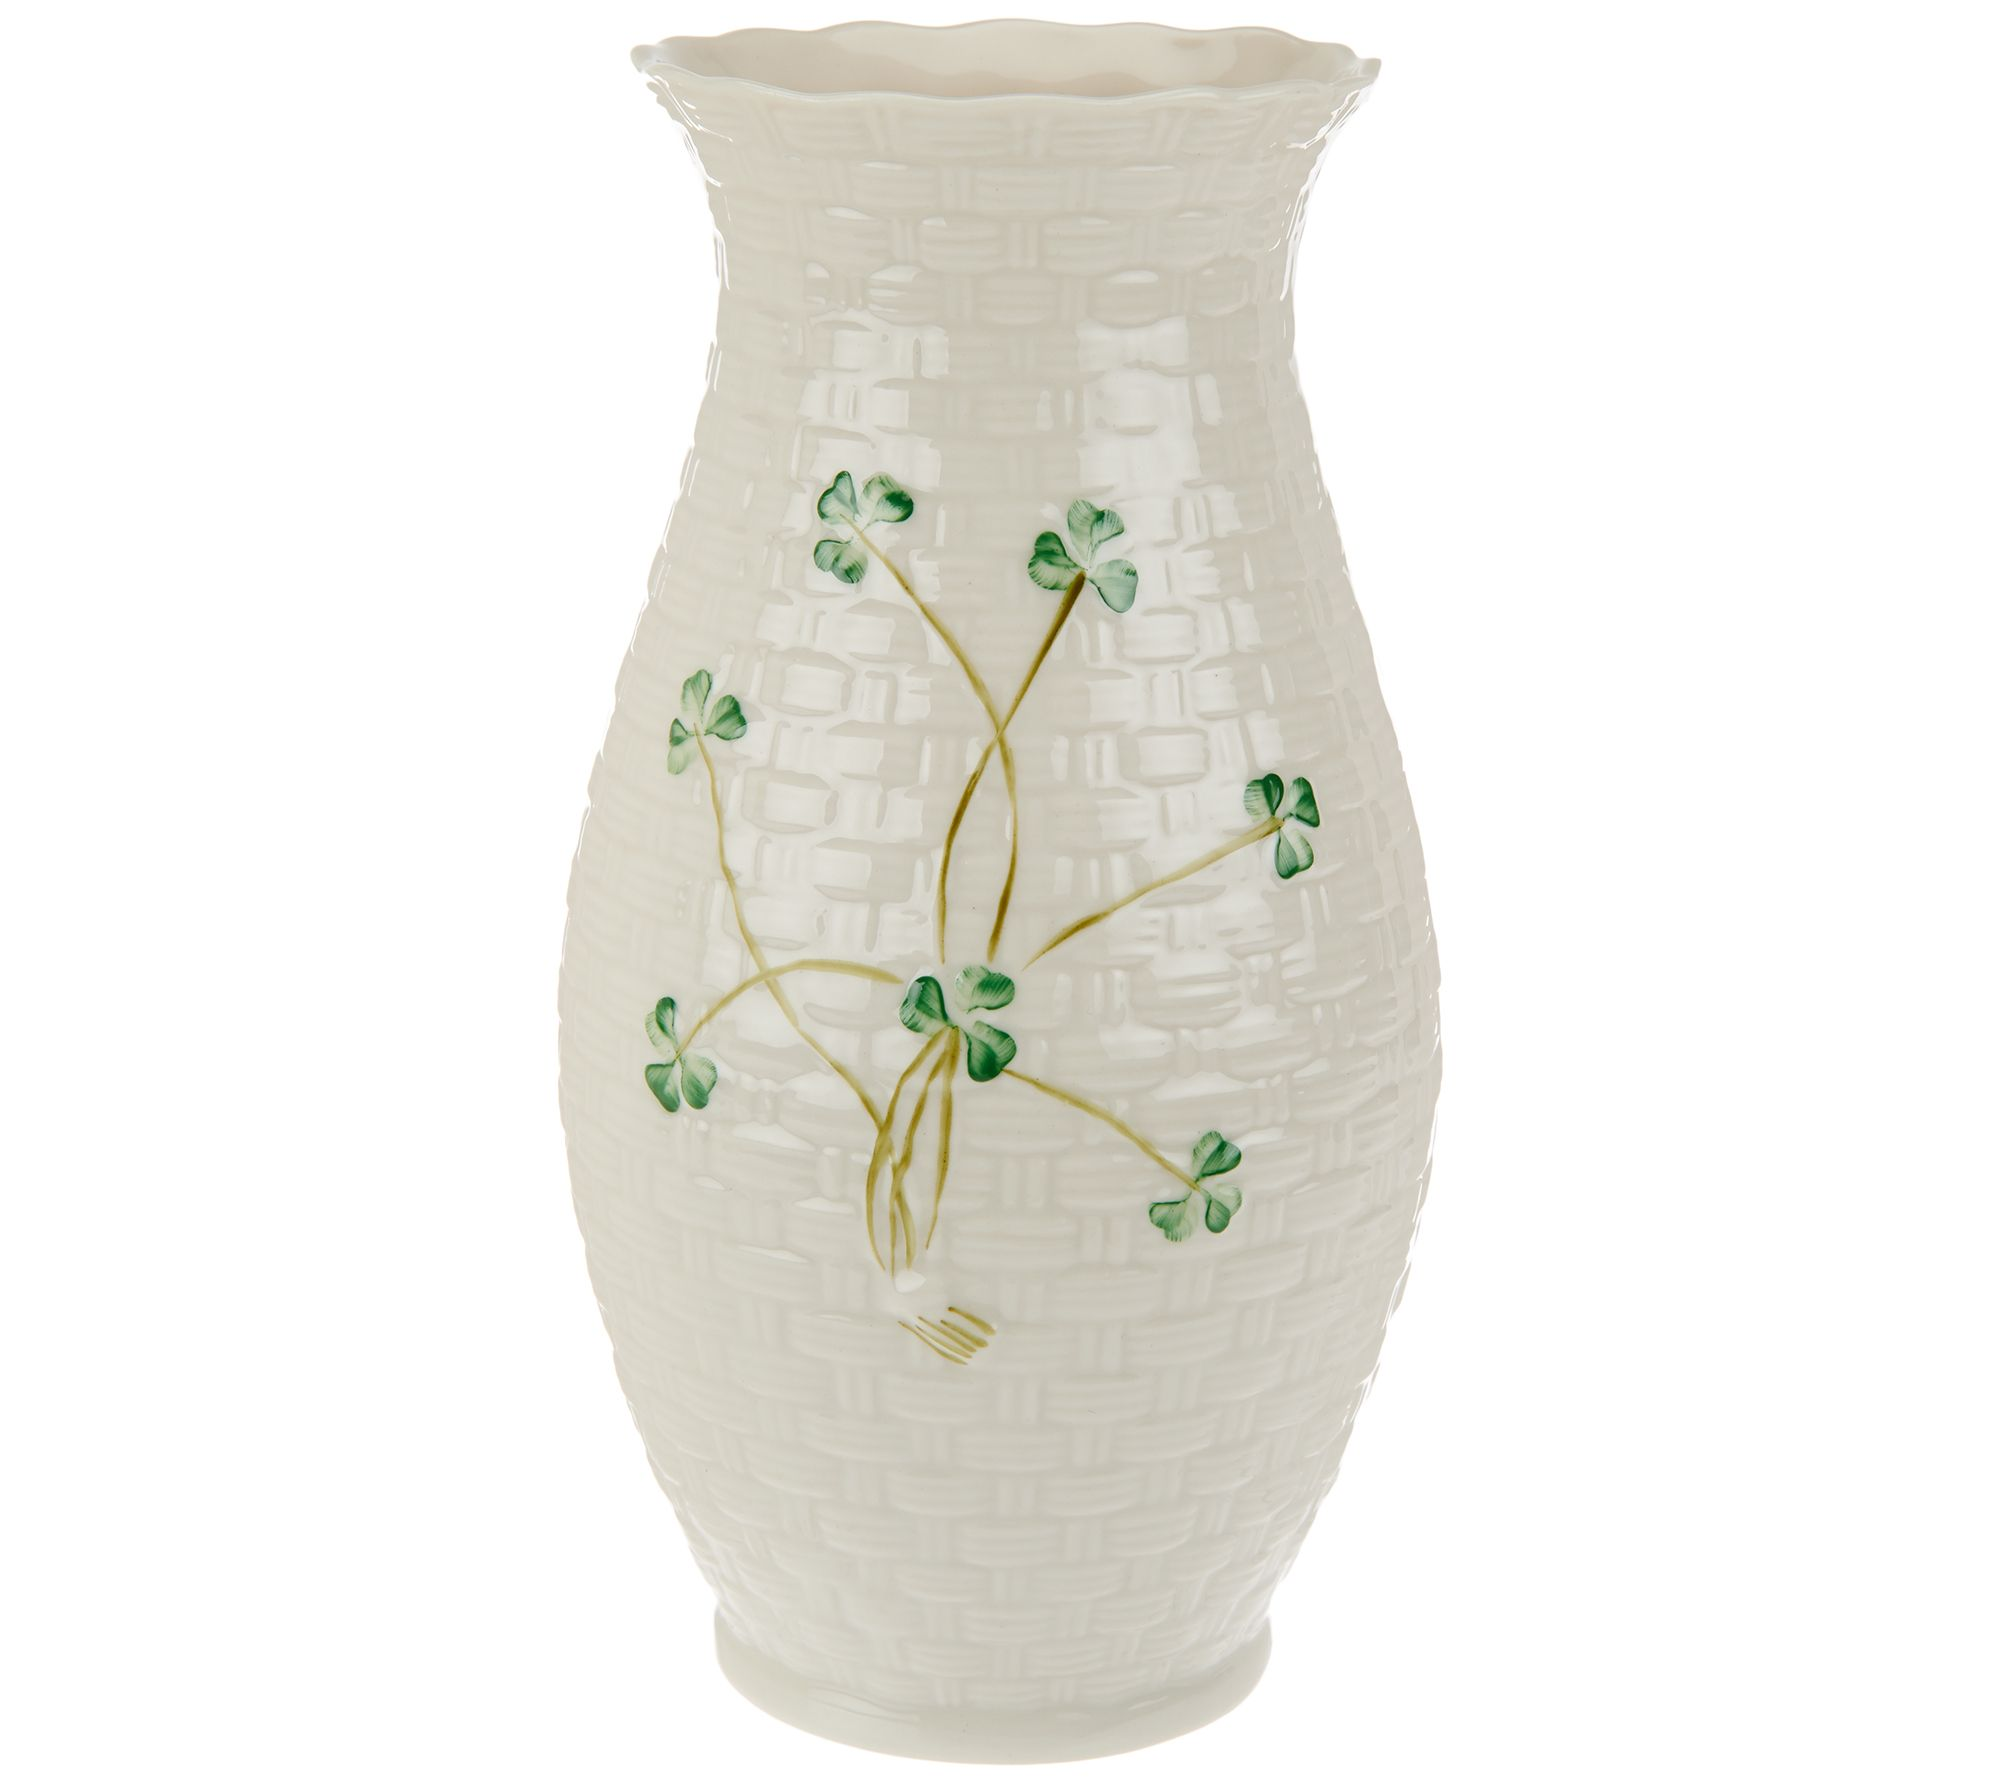 Decorative Jugs And Vases Vases Decorative Accents For The Home Qvccom